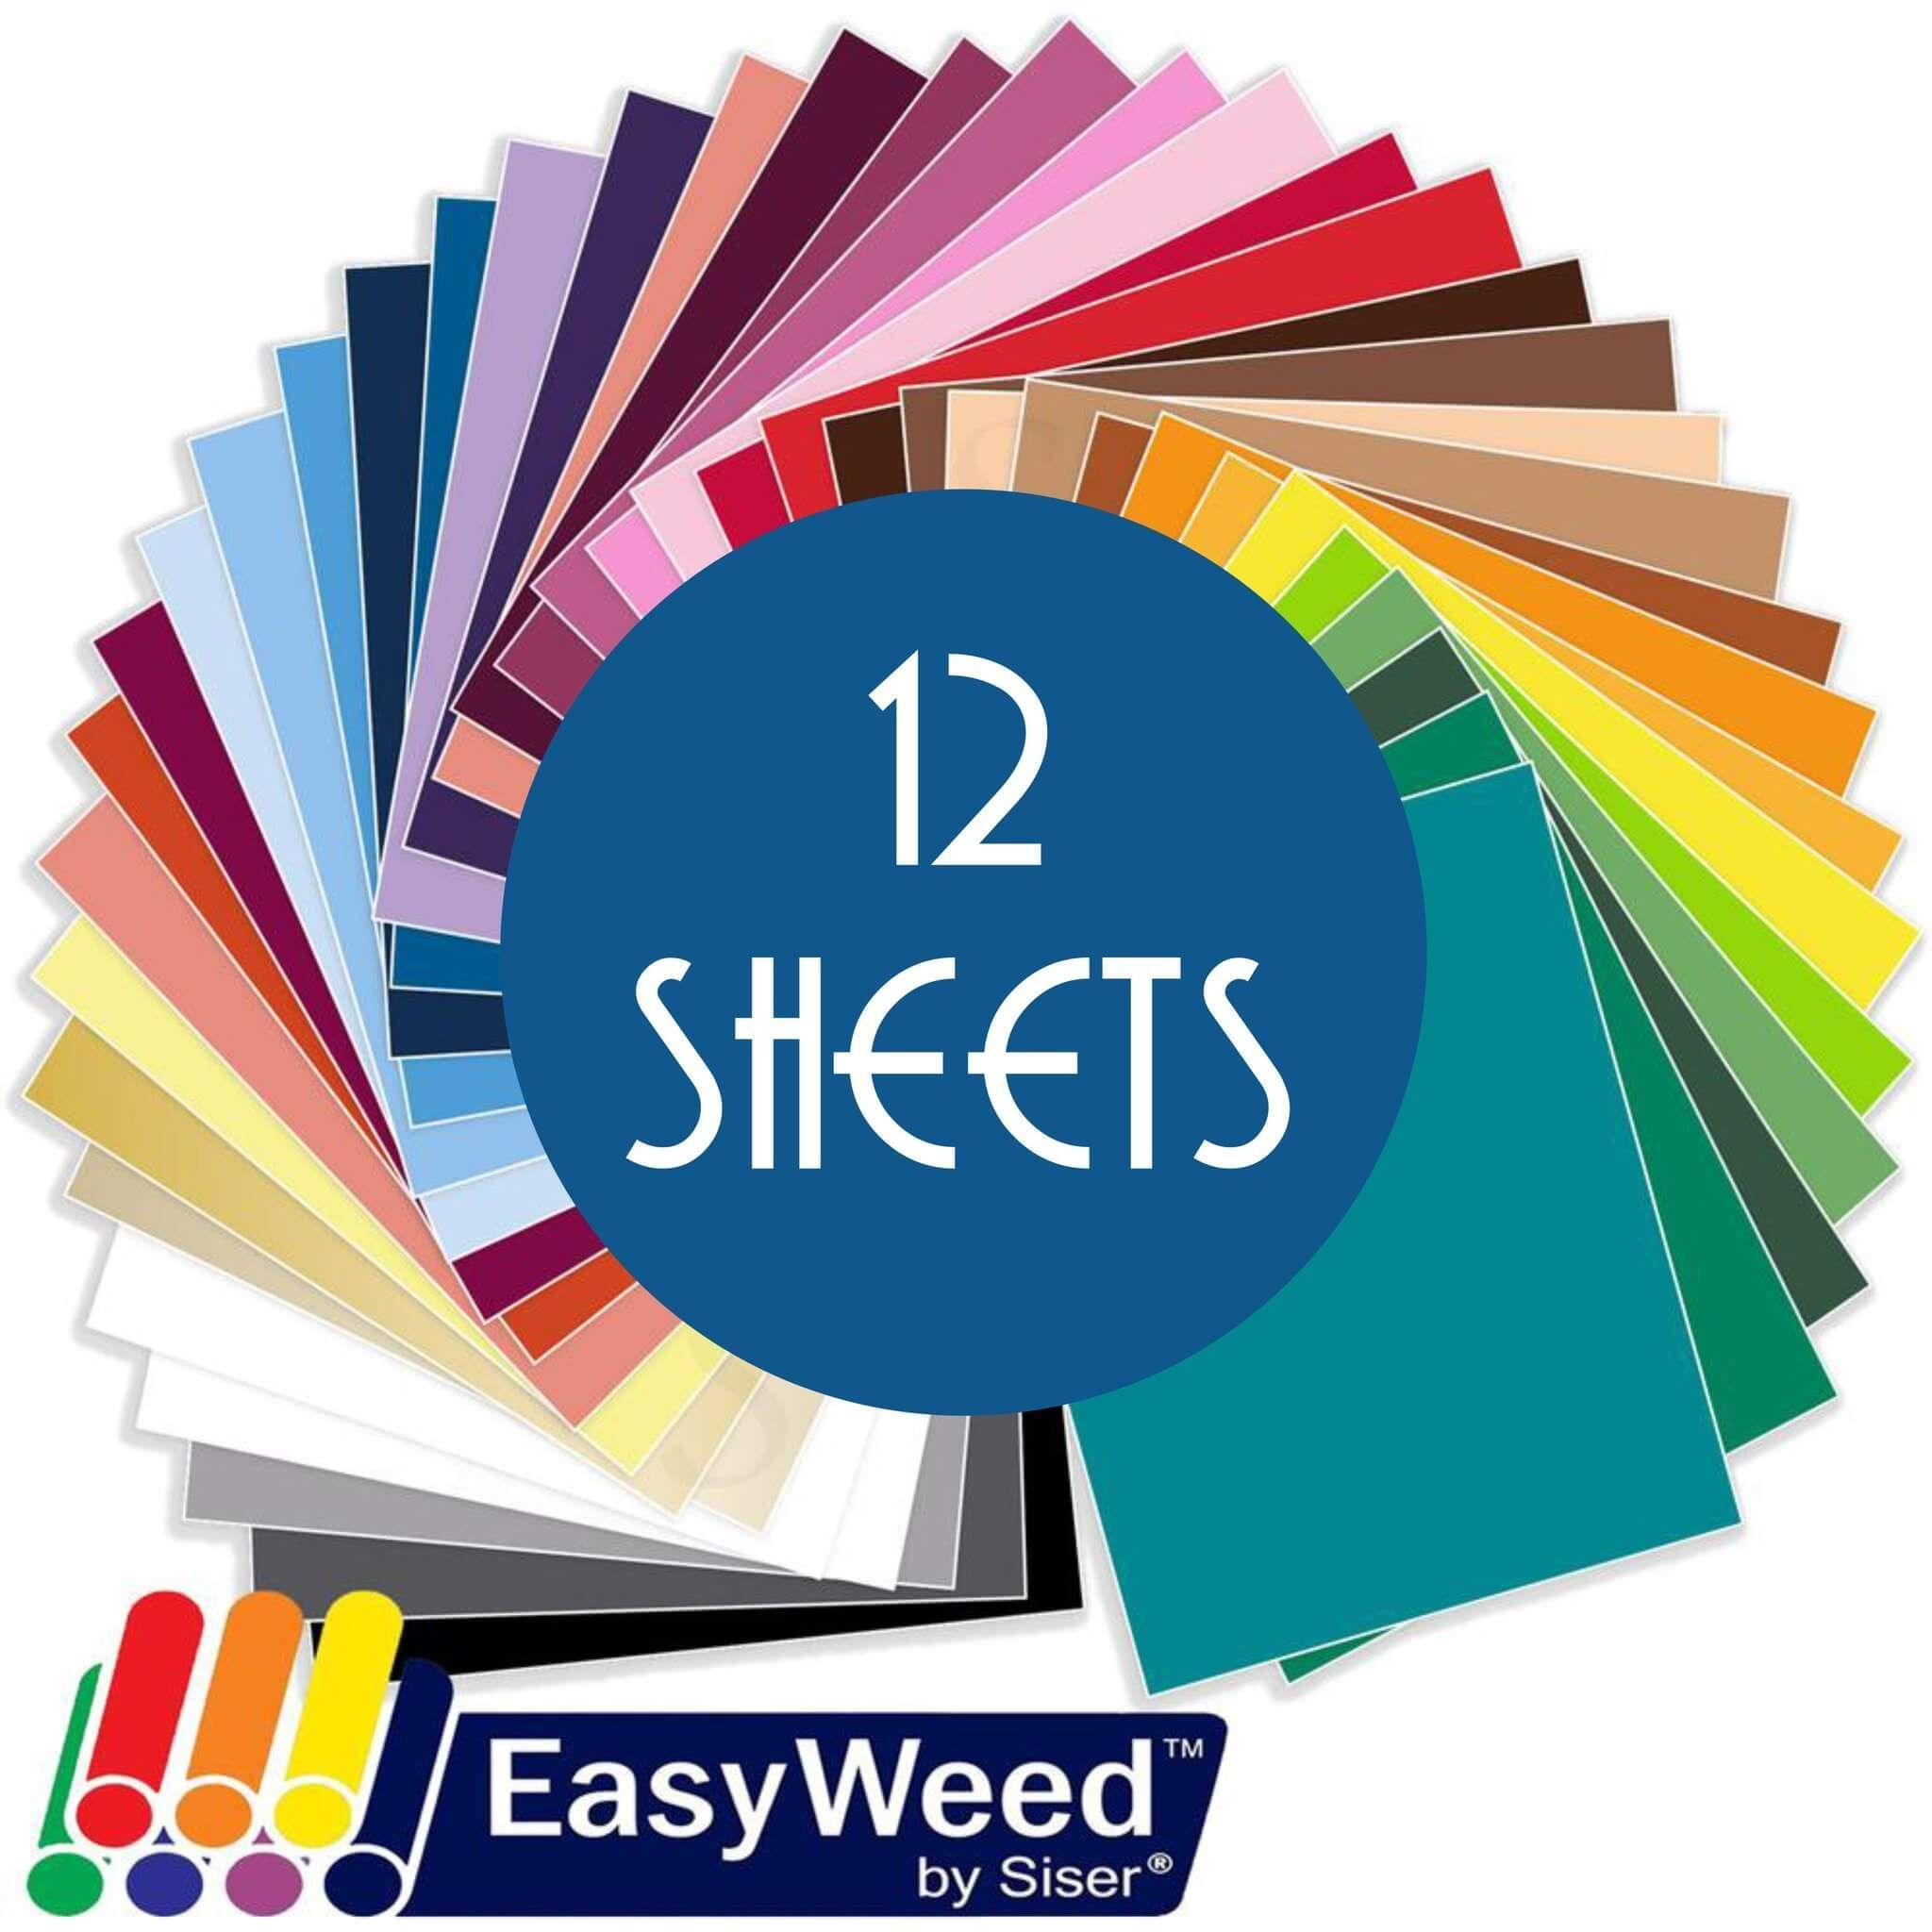 Siser Easyweed Heat Transfer Vinyl Htv 12 Sheets Build A Bundle 12 X 15 Siser Easyweed Oracal Vinyl Easyweed